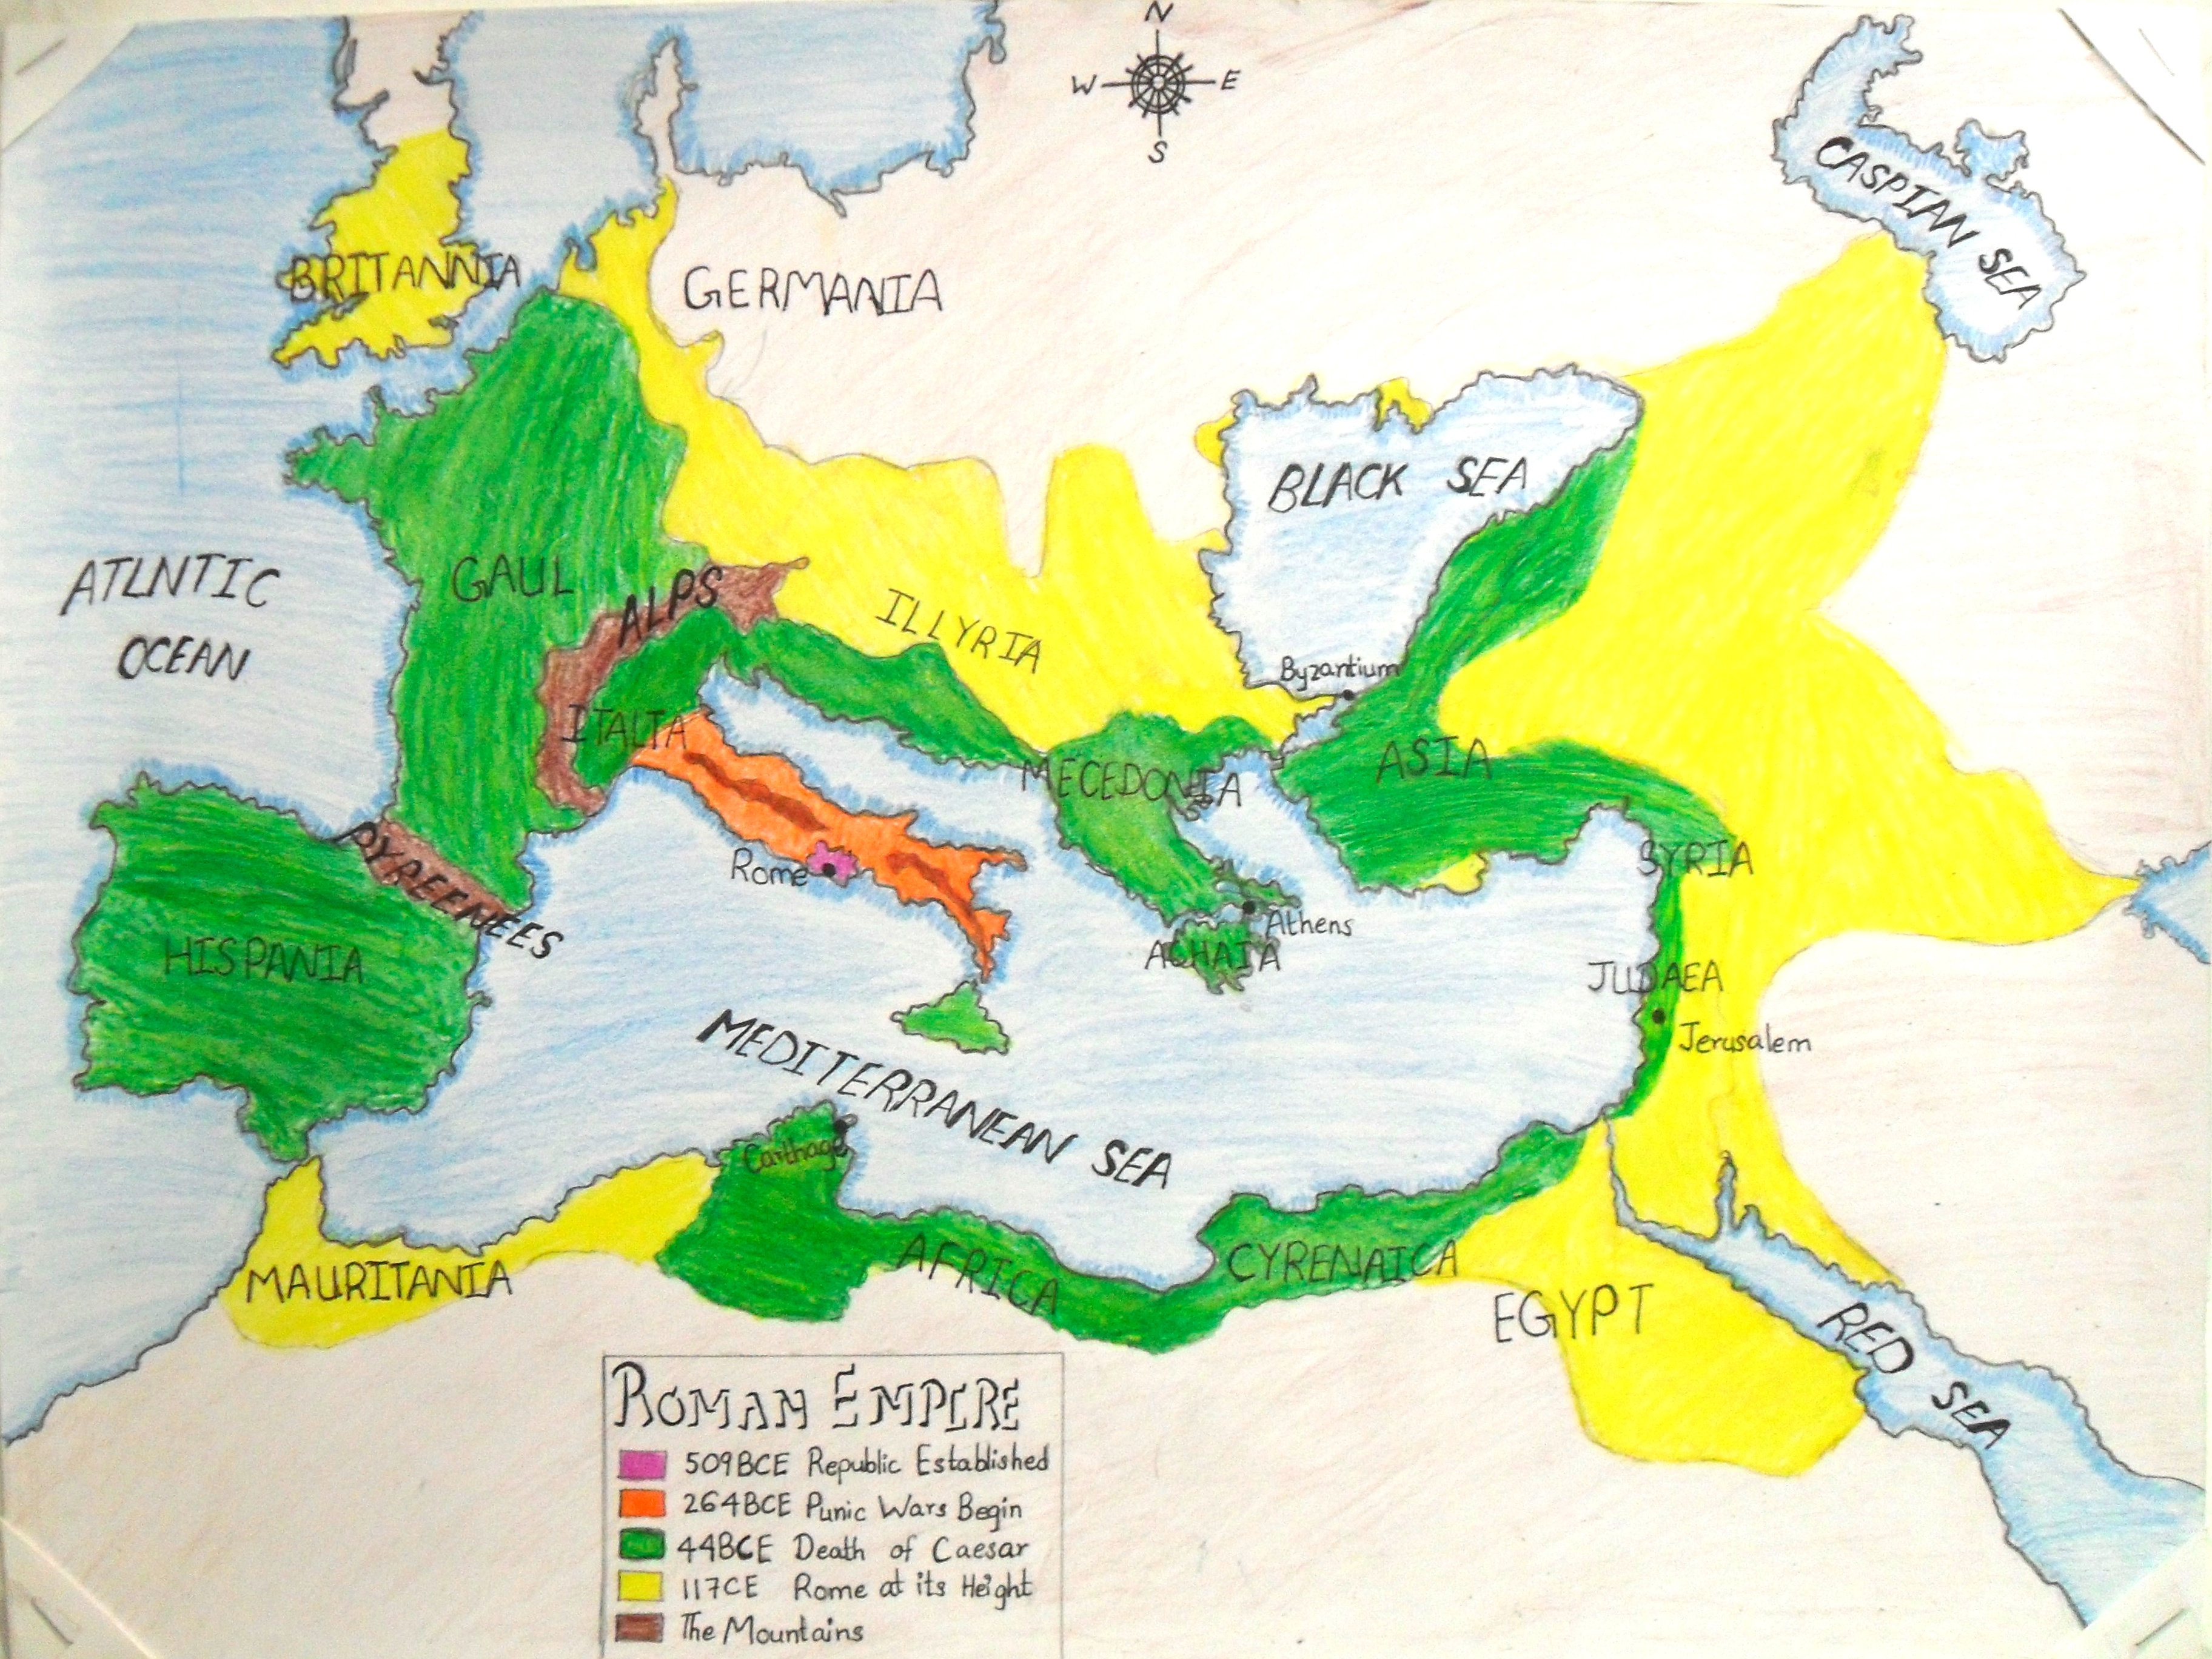 Roman Empire Expansion Maps 2012 2013 on Us History Nationalism